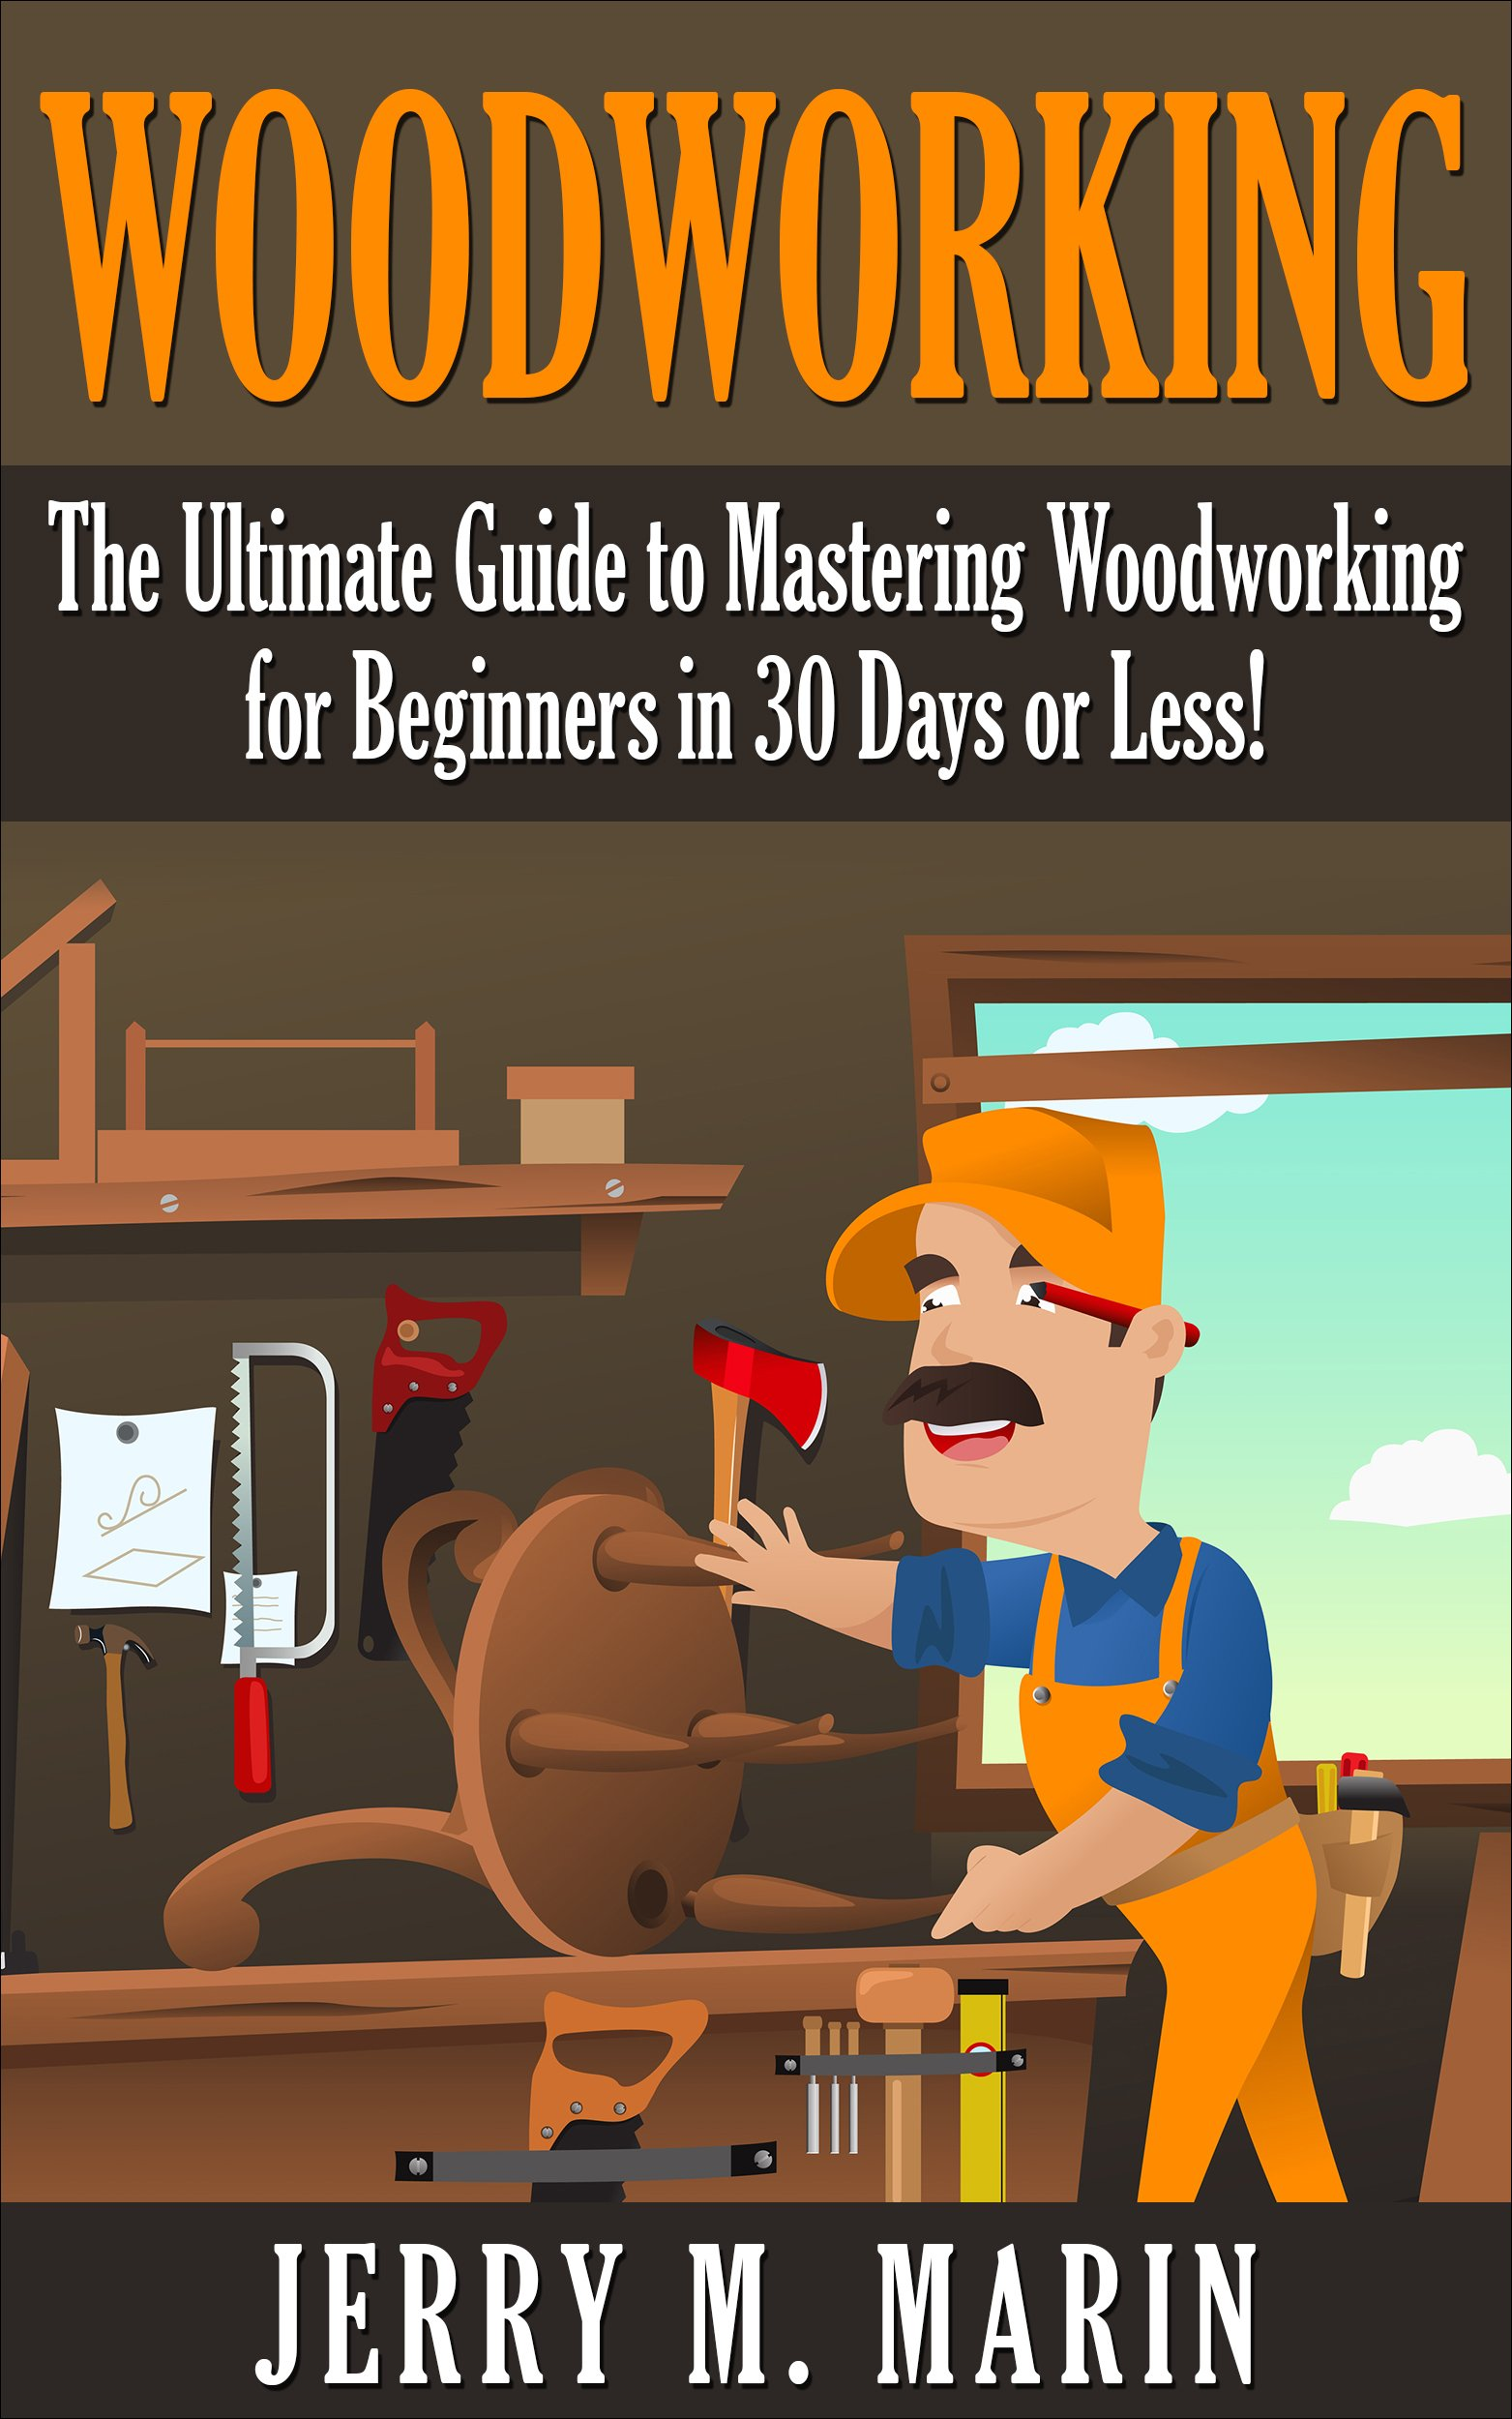 Woodworking  The Ultimate Guide To Mastering Woodworking For Beginners In 30 Days Or Less   Woodworking   Woodworking For Beginners   Woodworking Plans ...   DIY Woodworking   English Edition